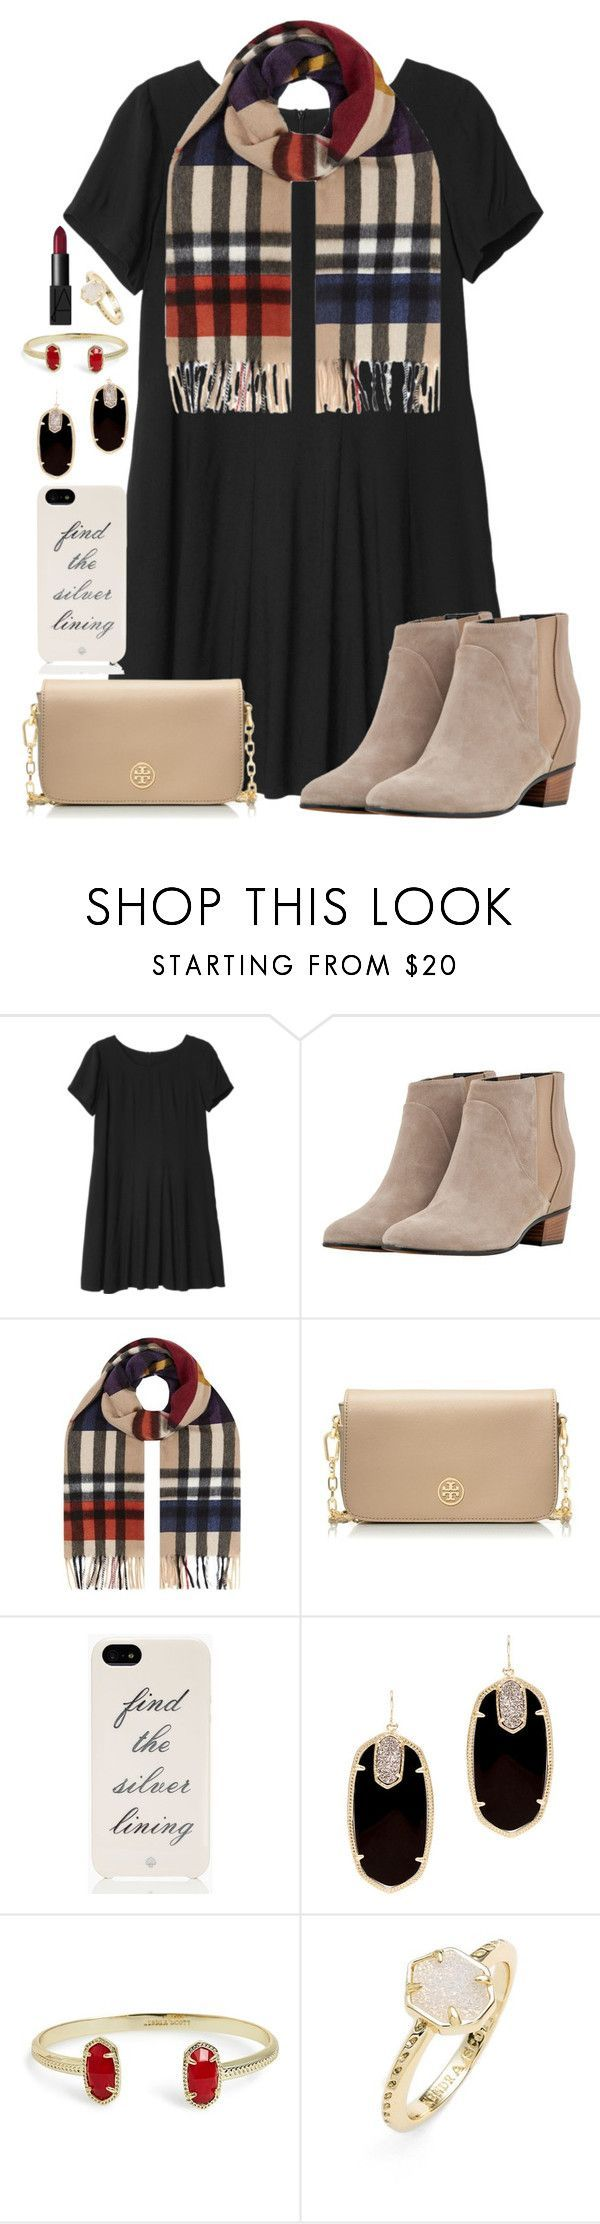 """""""day 9: Christmas Eve dinner and church service"""" by julesnewkirk ❤️ liked on Polyvore featuring moda, Monki, Golden Goose, Burberry, Tory Burch, Kate Spade, Kendra Scott, NARS Cosmetics y Christmascontest"""